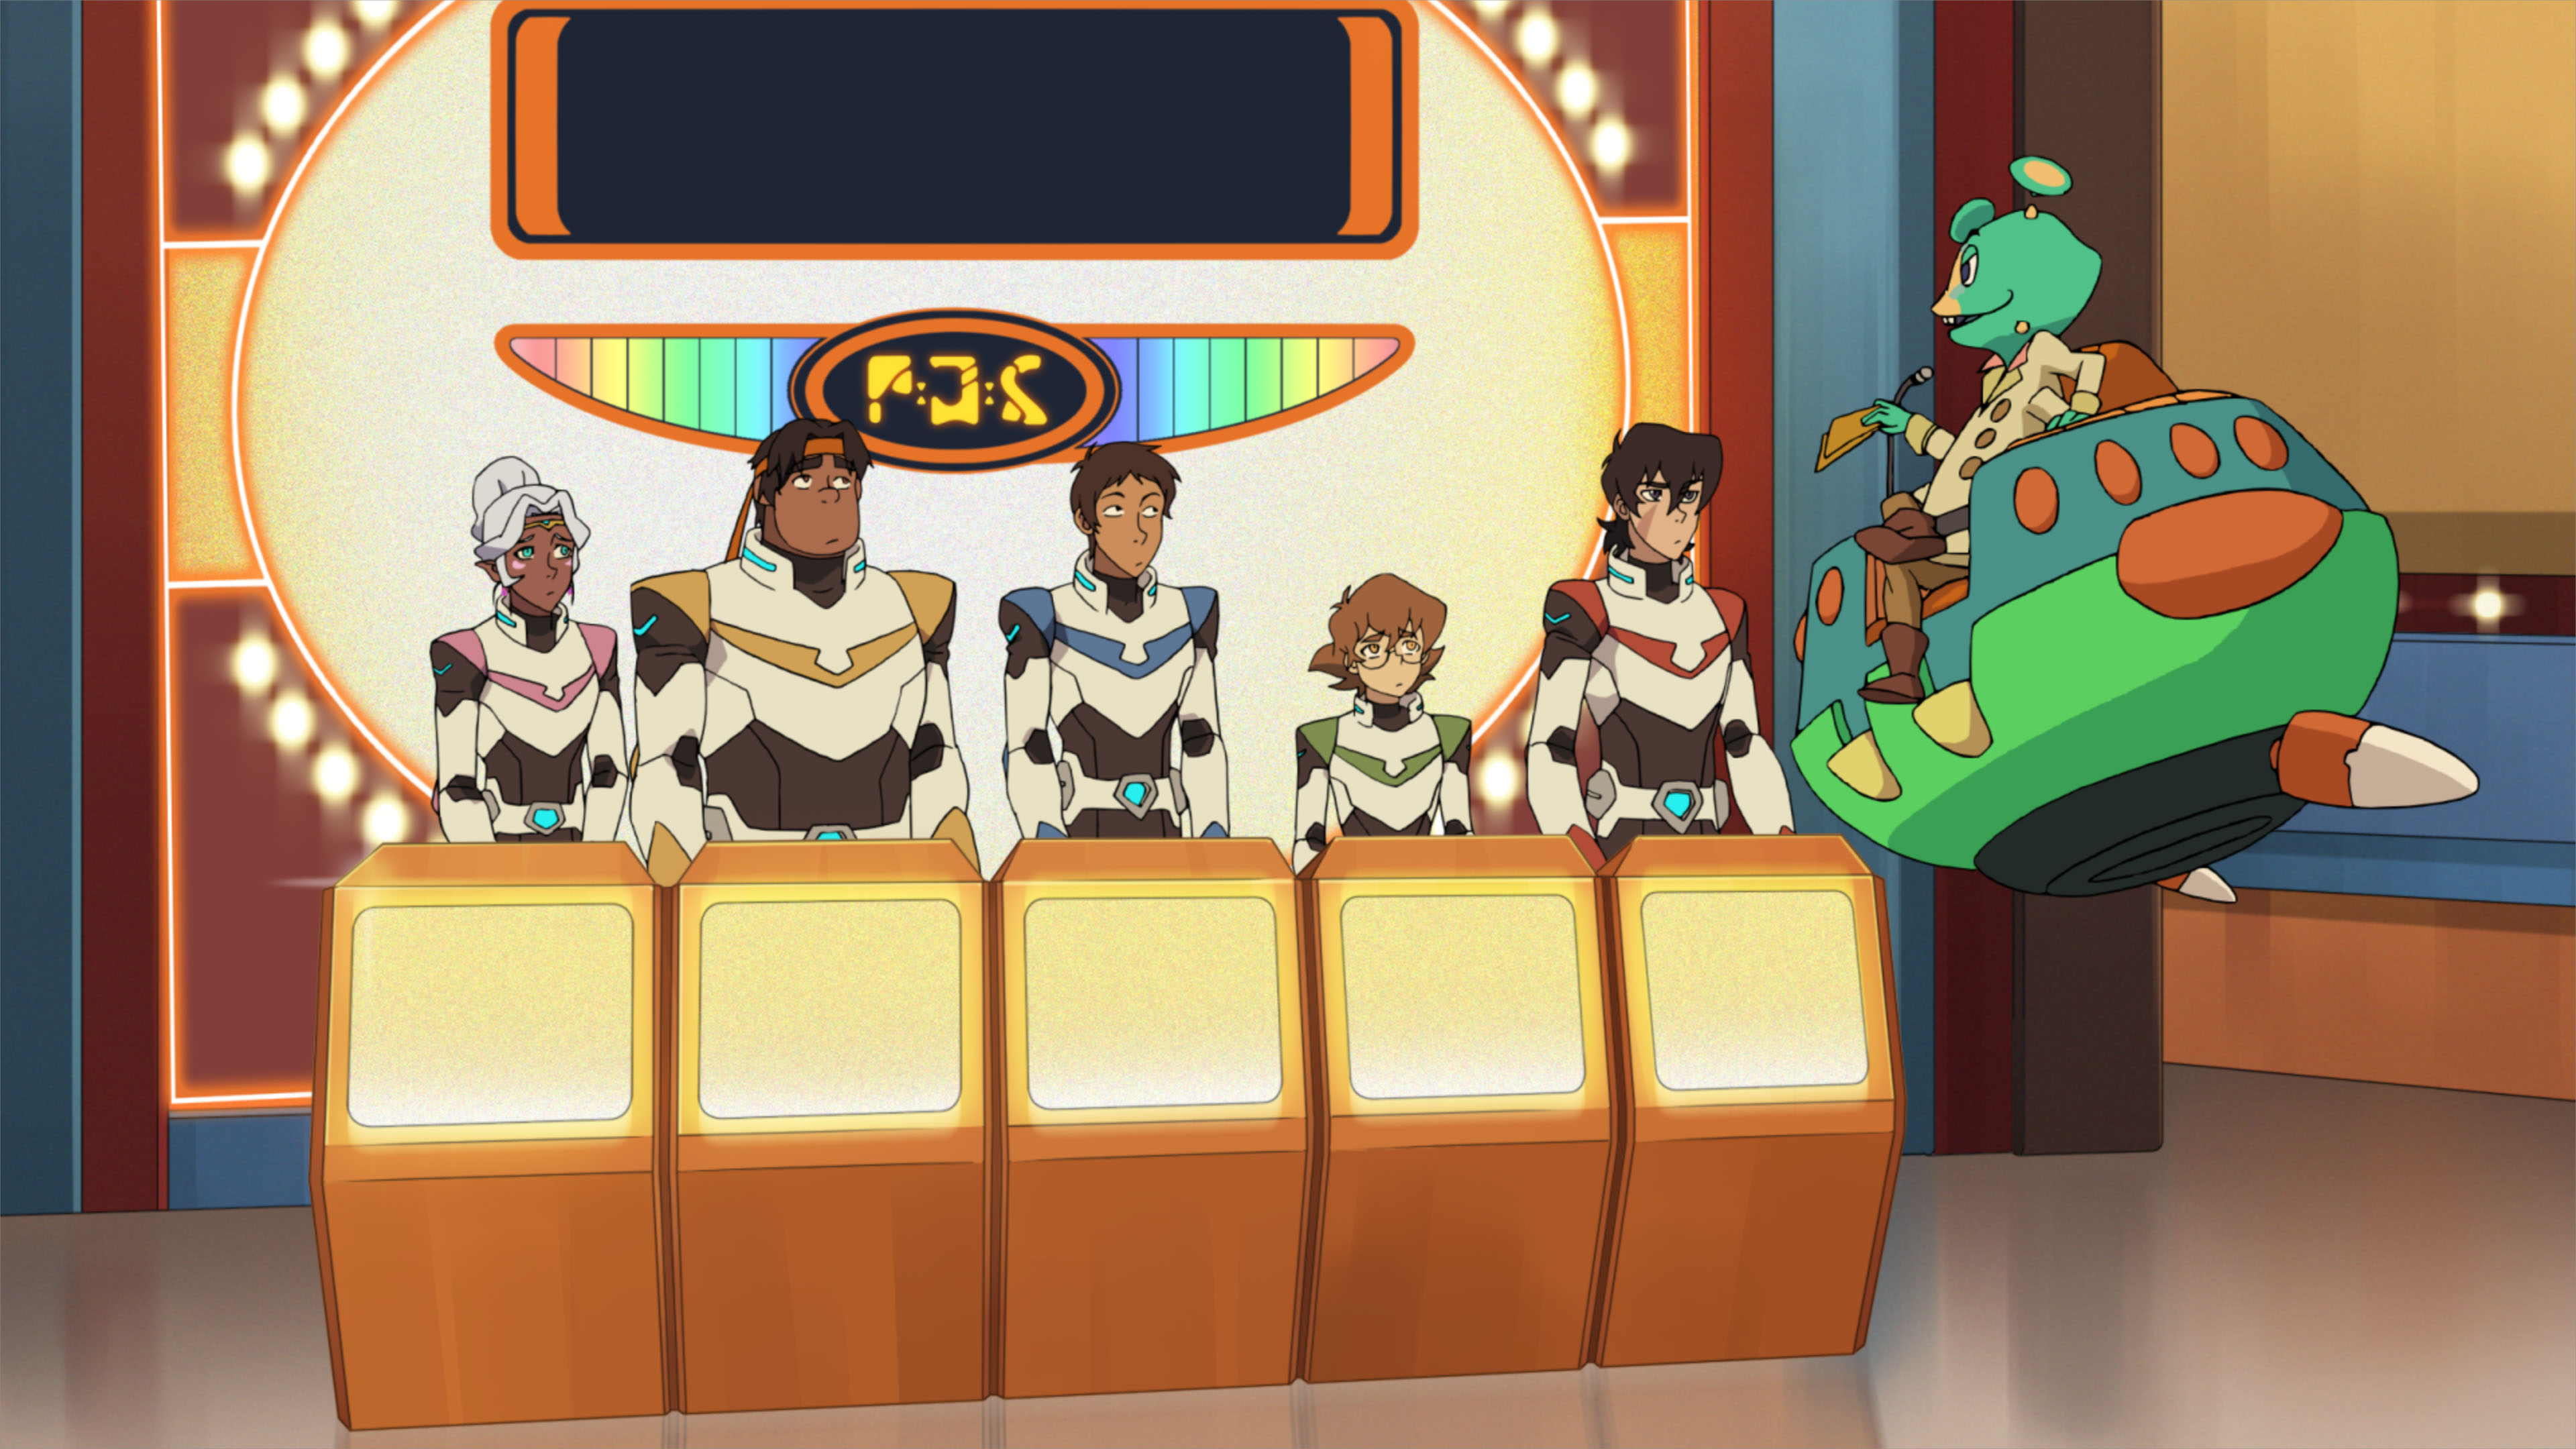 Voltron's Penultimate Season Triumphantly Heads Home - But